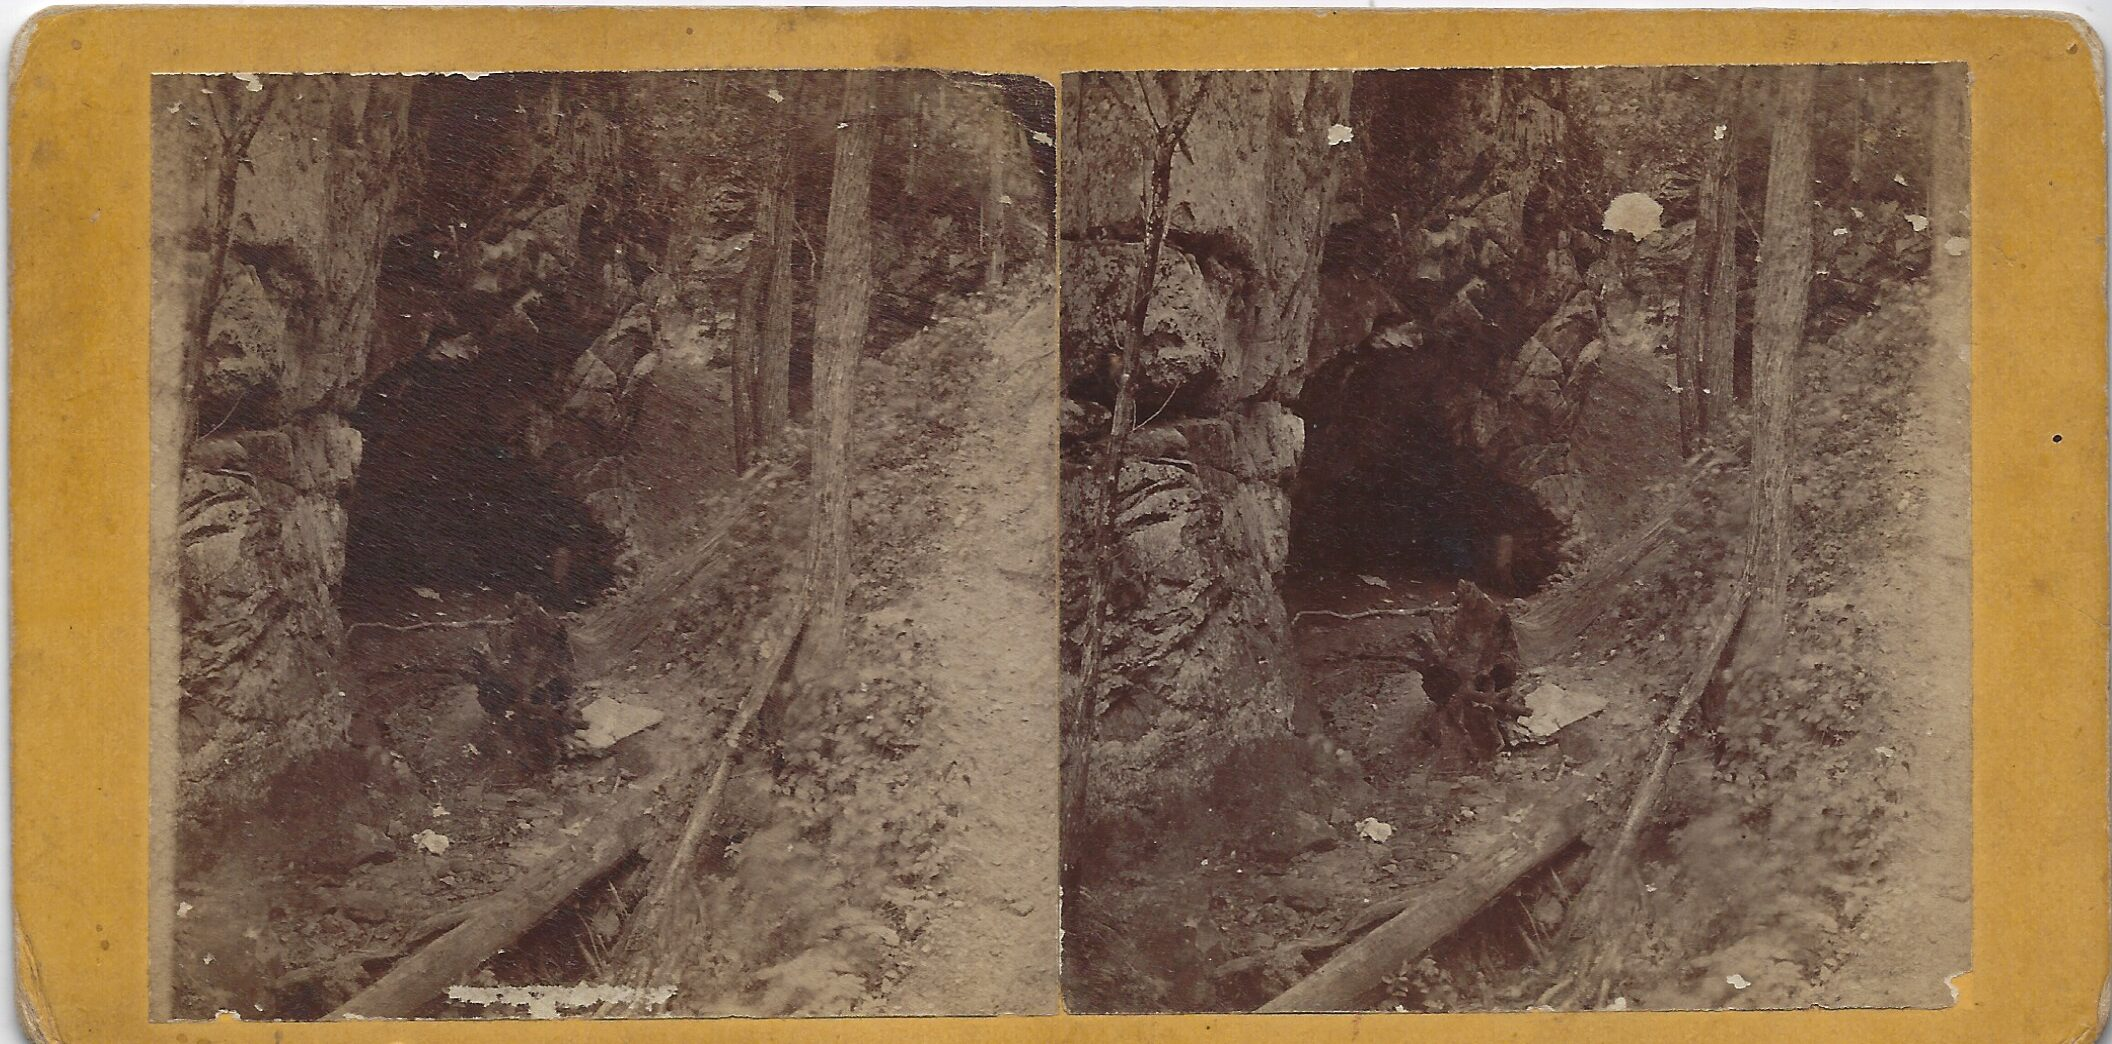 LJTP 100.261 - S. Root SAR - Picture Rock north of Dubuque - c1870